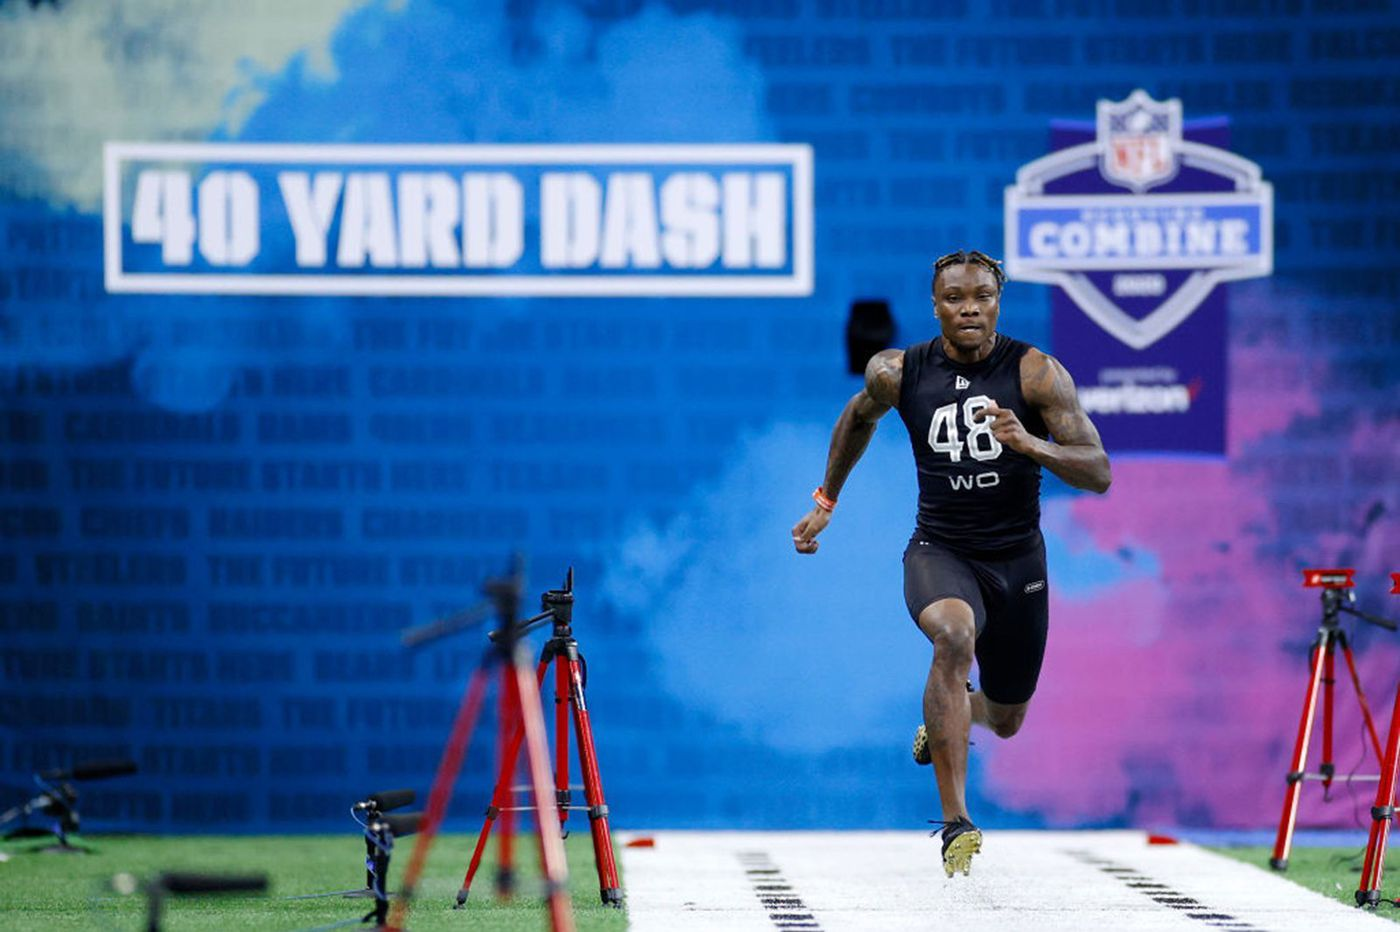 Henry Ruggs' stellar 40-yard dash may mean Eagles have to trade up if they want to draft him | Early Birds